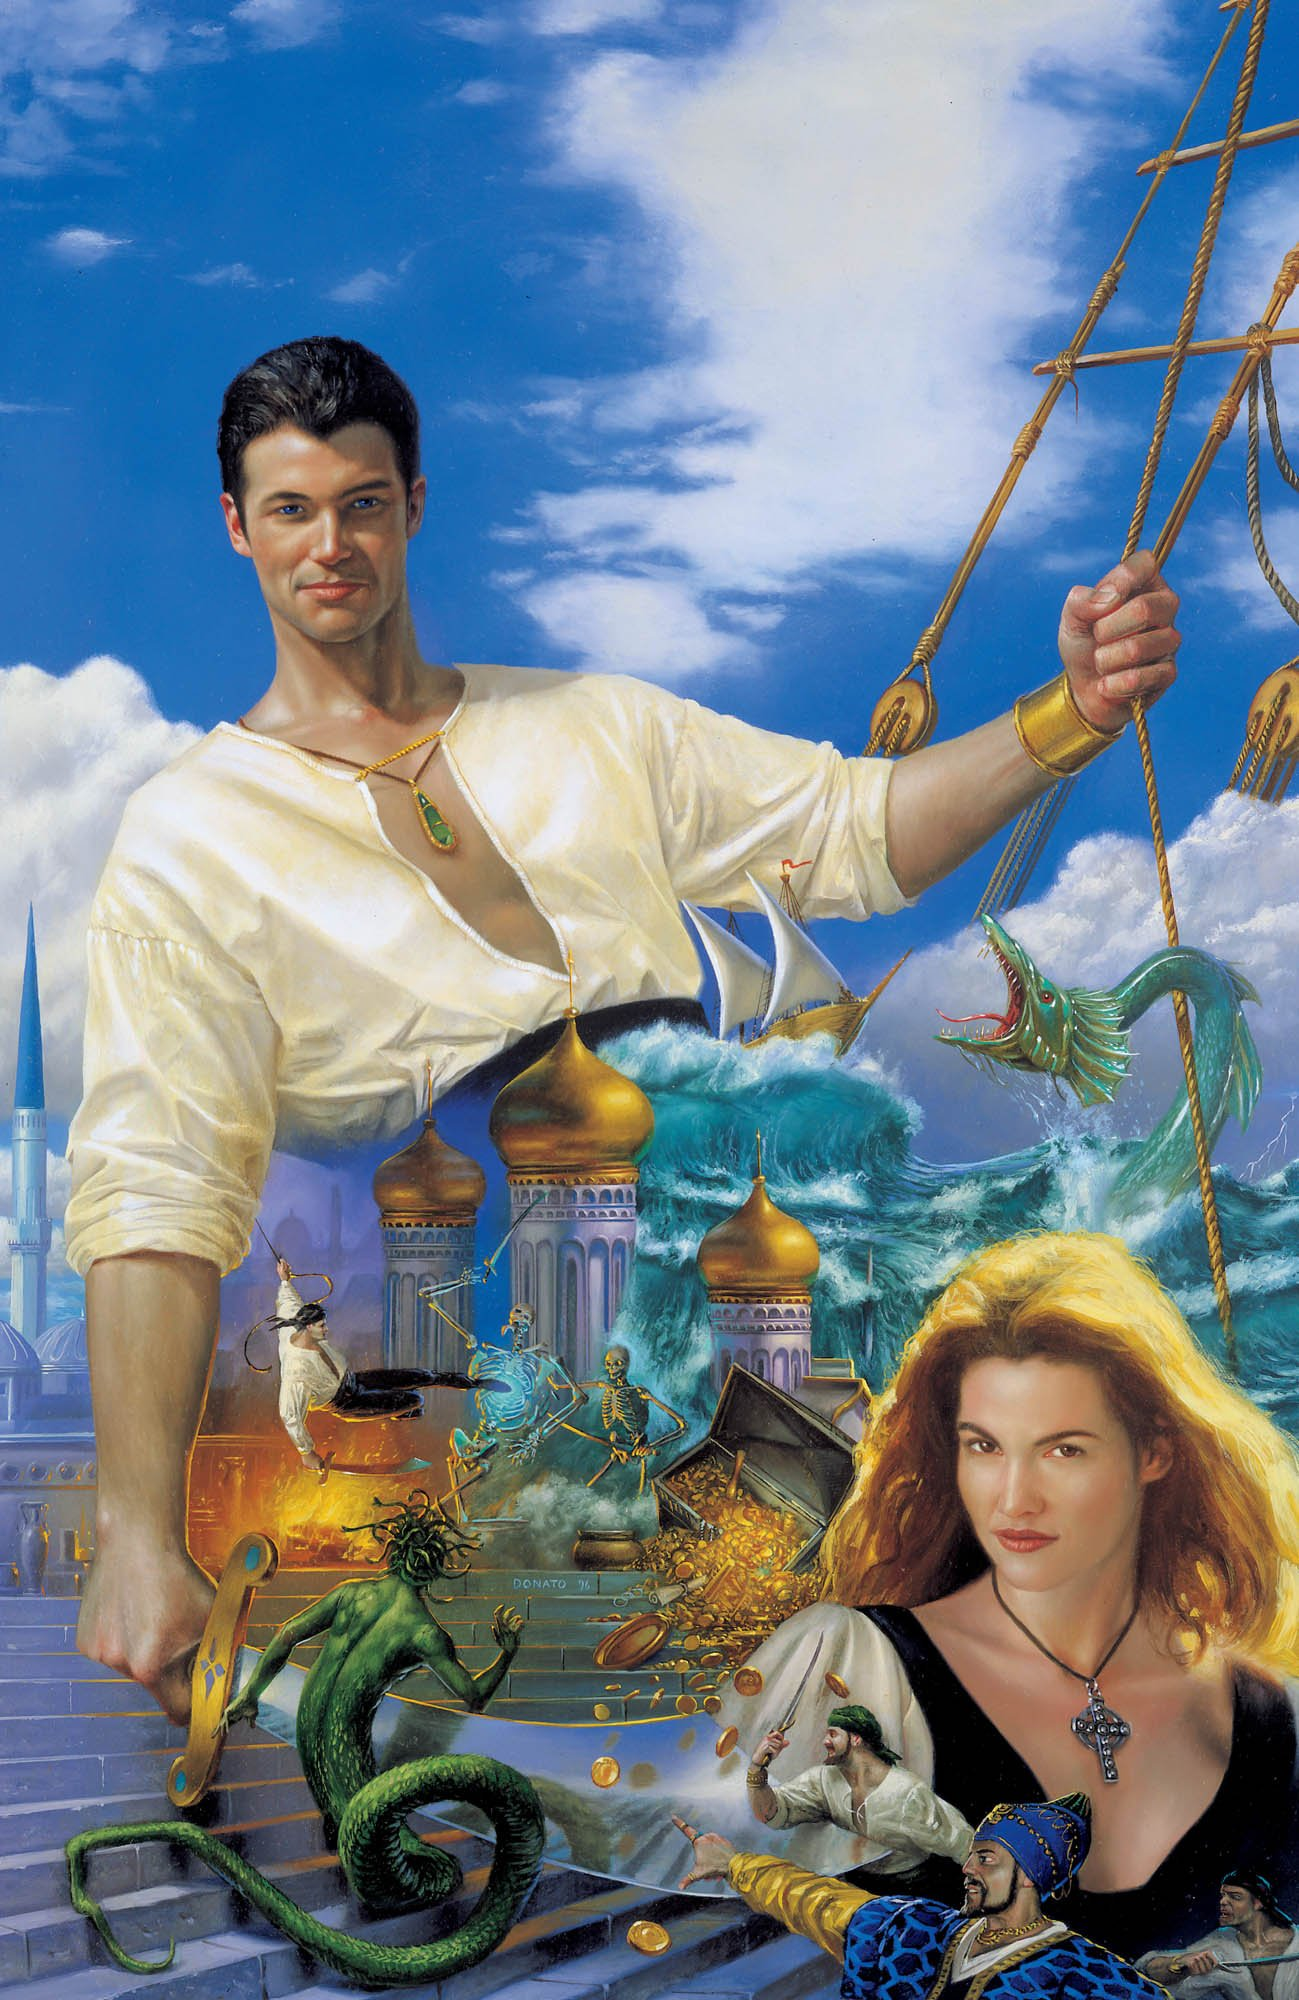 https://0201.nccdn.net/1_2/000/000/11f/efc/The-Adventures-of-Sinbad-300lpi-1299x2000.jpg